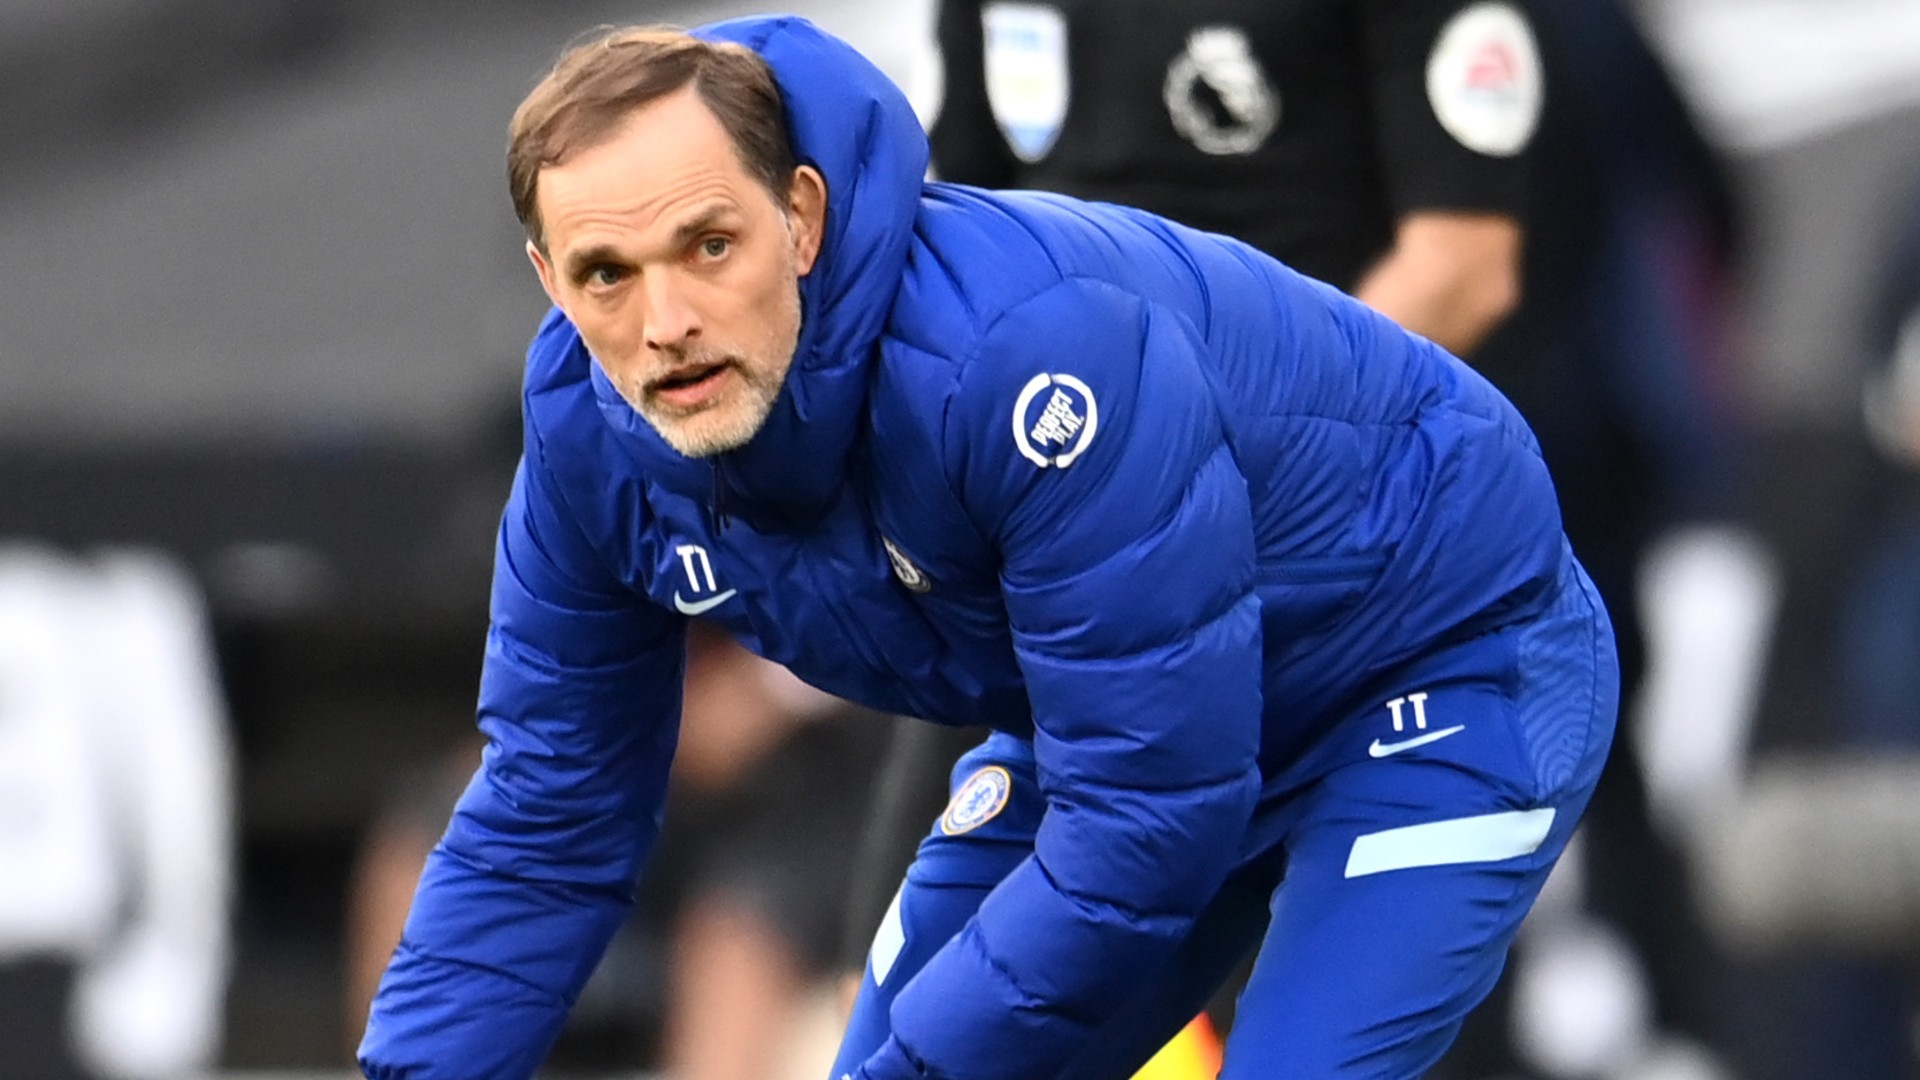 Tuchel: Chelsea facing two cup finals with Leicester